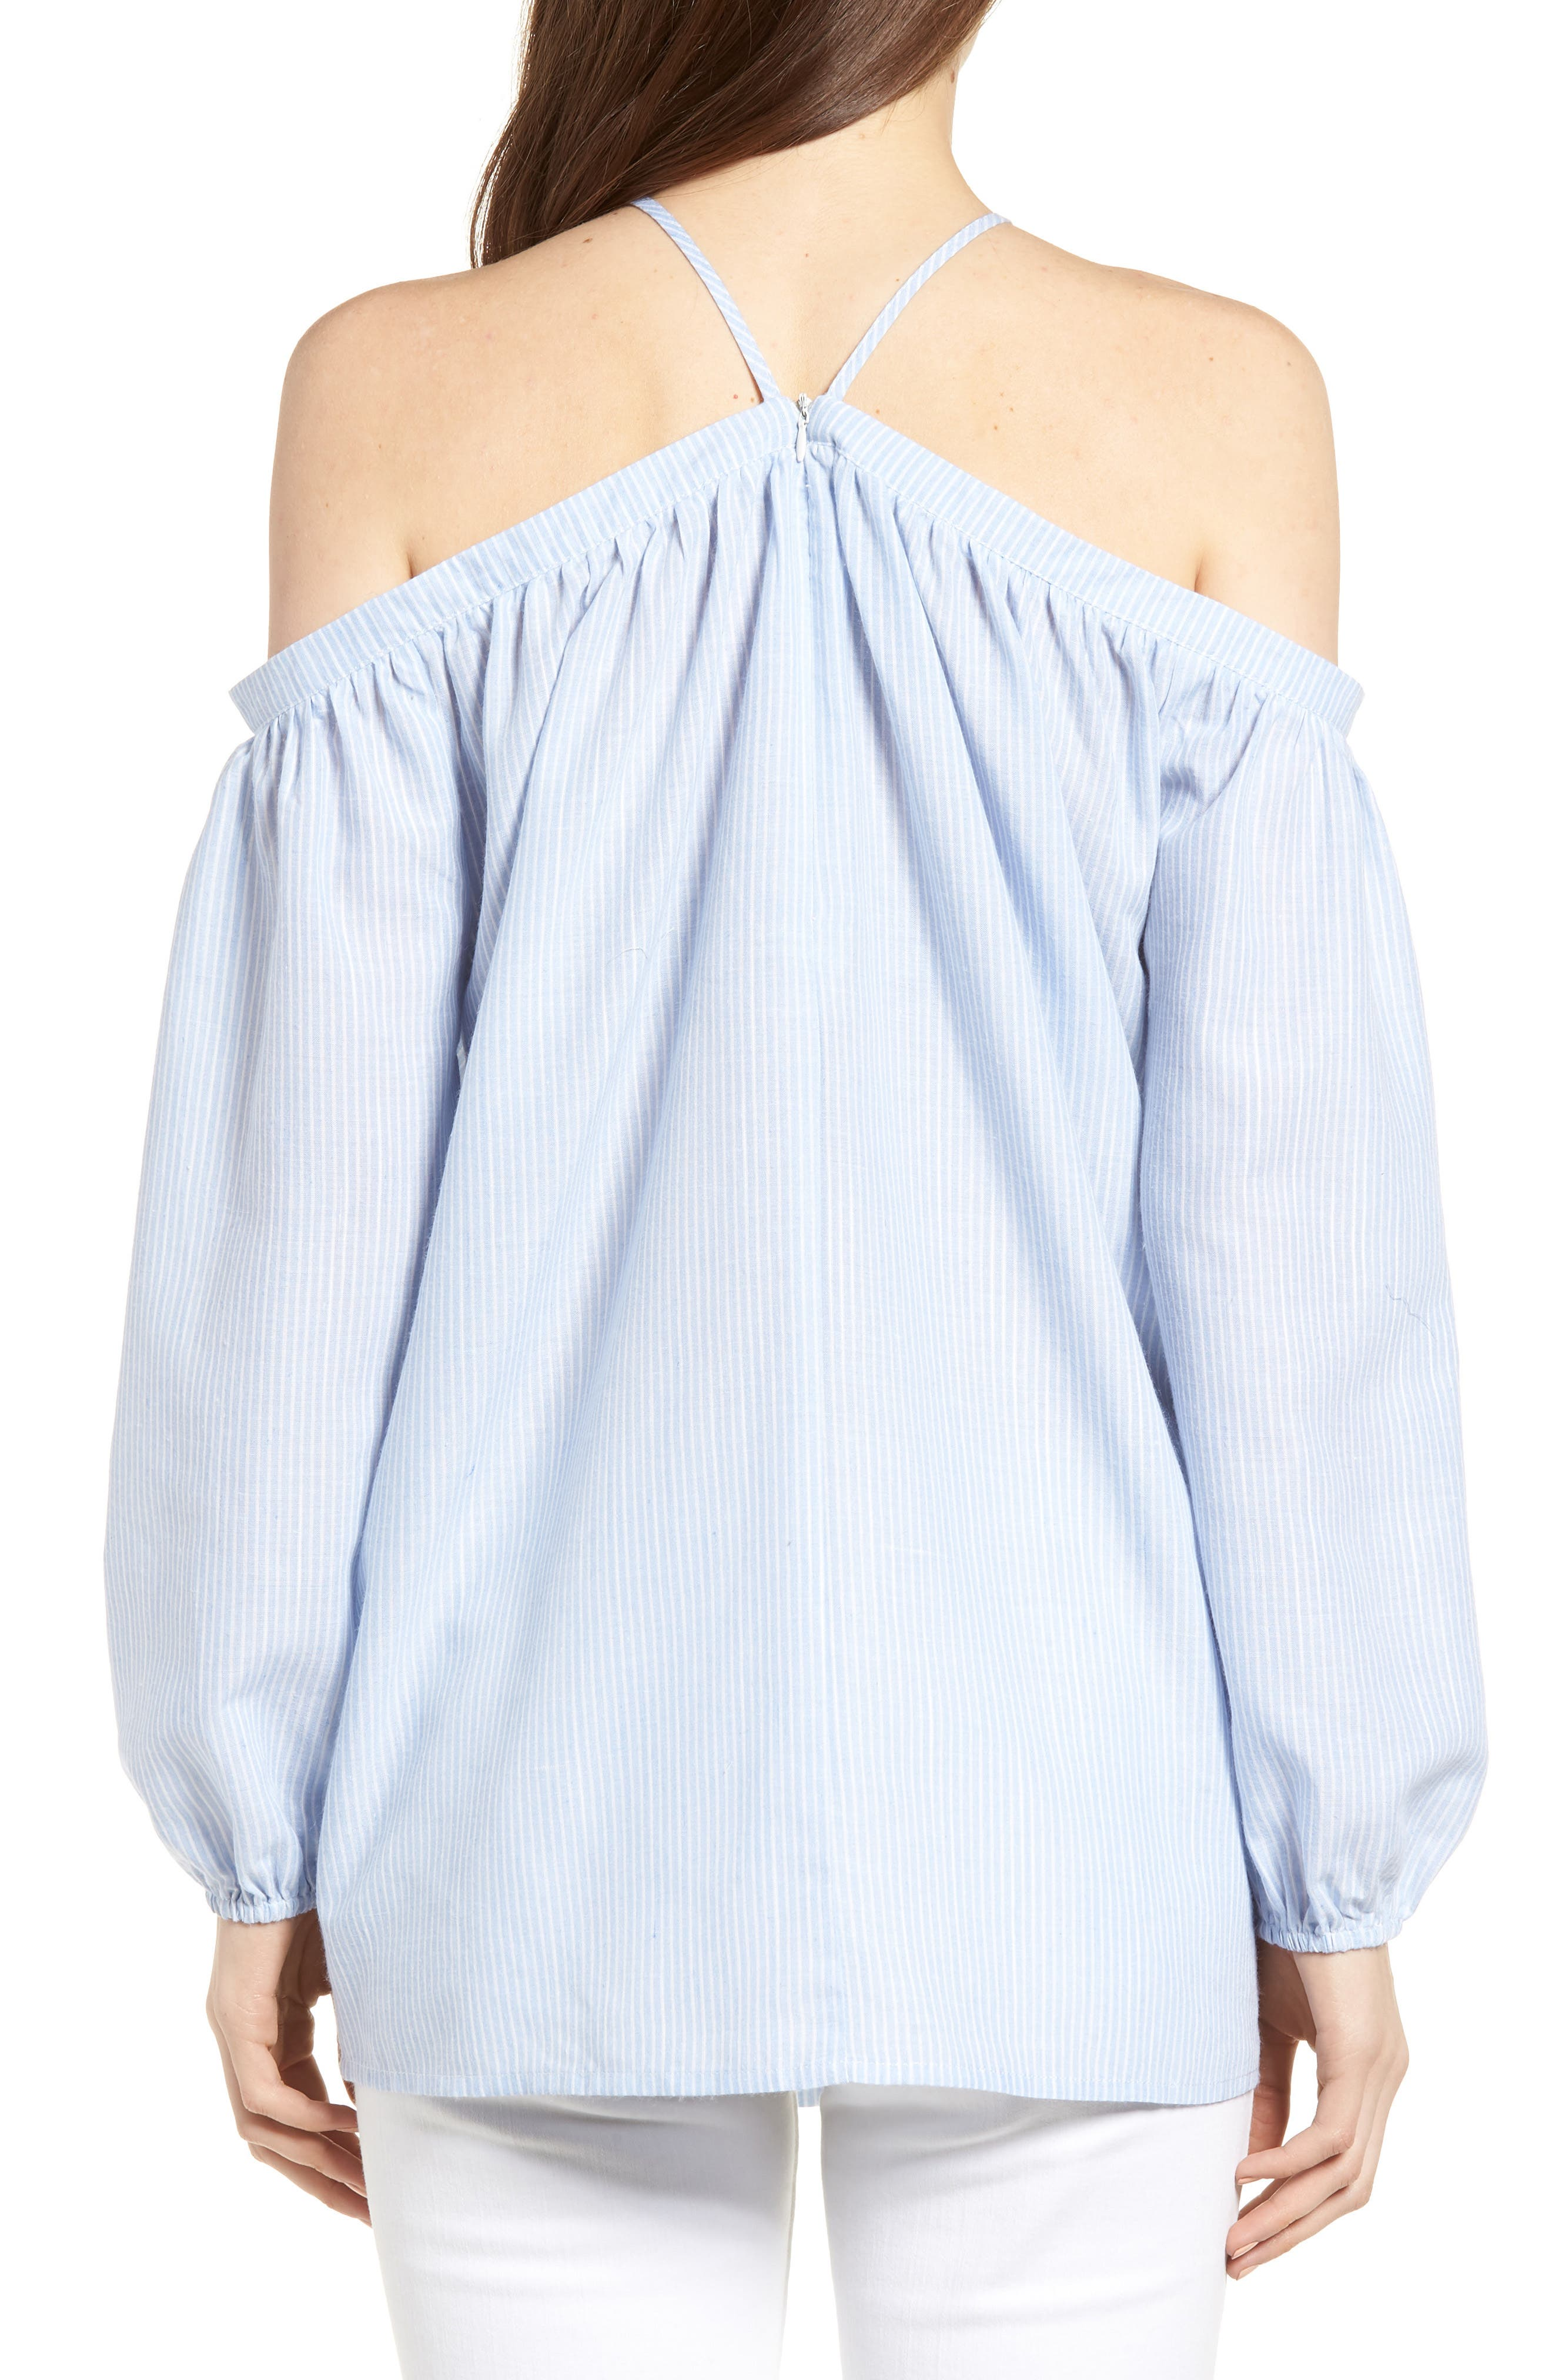 Bishop + Young Ana Stripe Off the Shoulder Top,                             Alternate thumbnail 2, color,                             Blue White Stripe